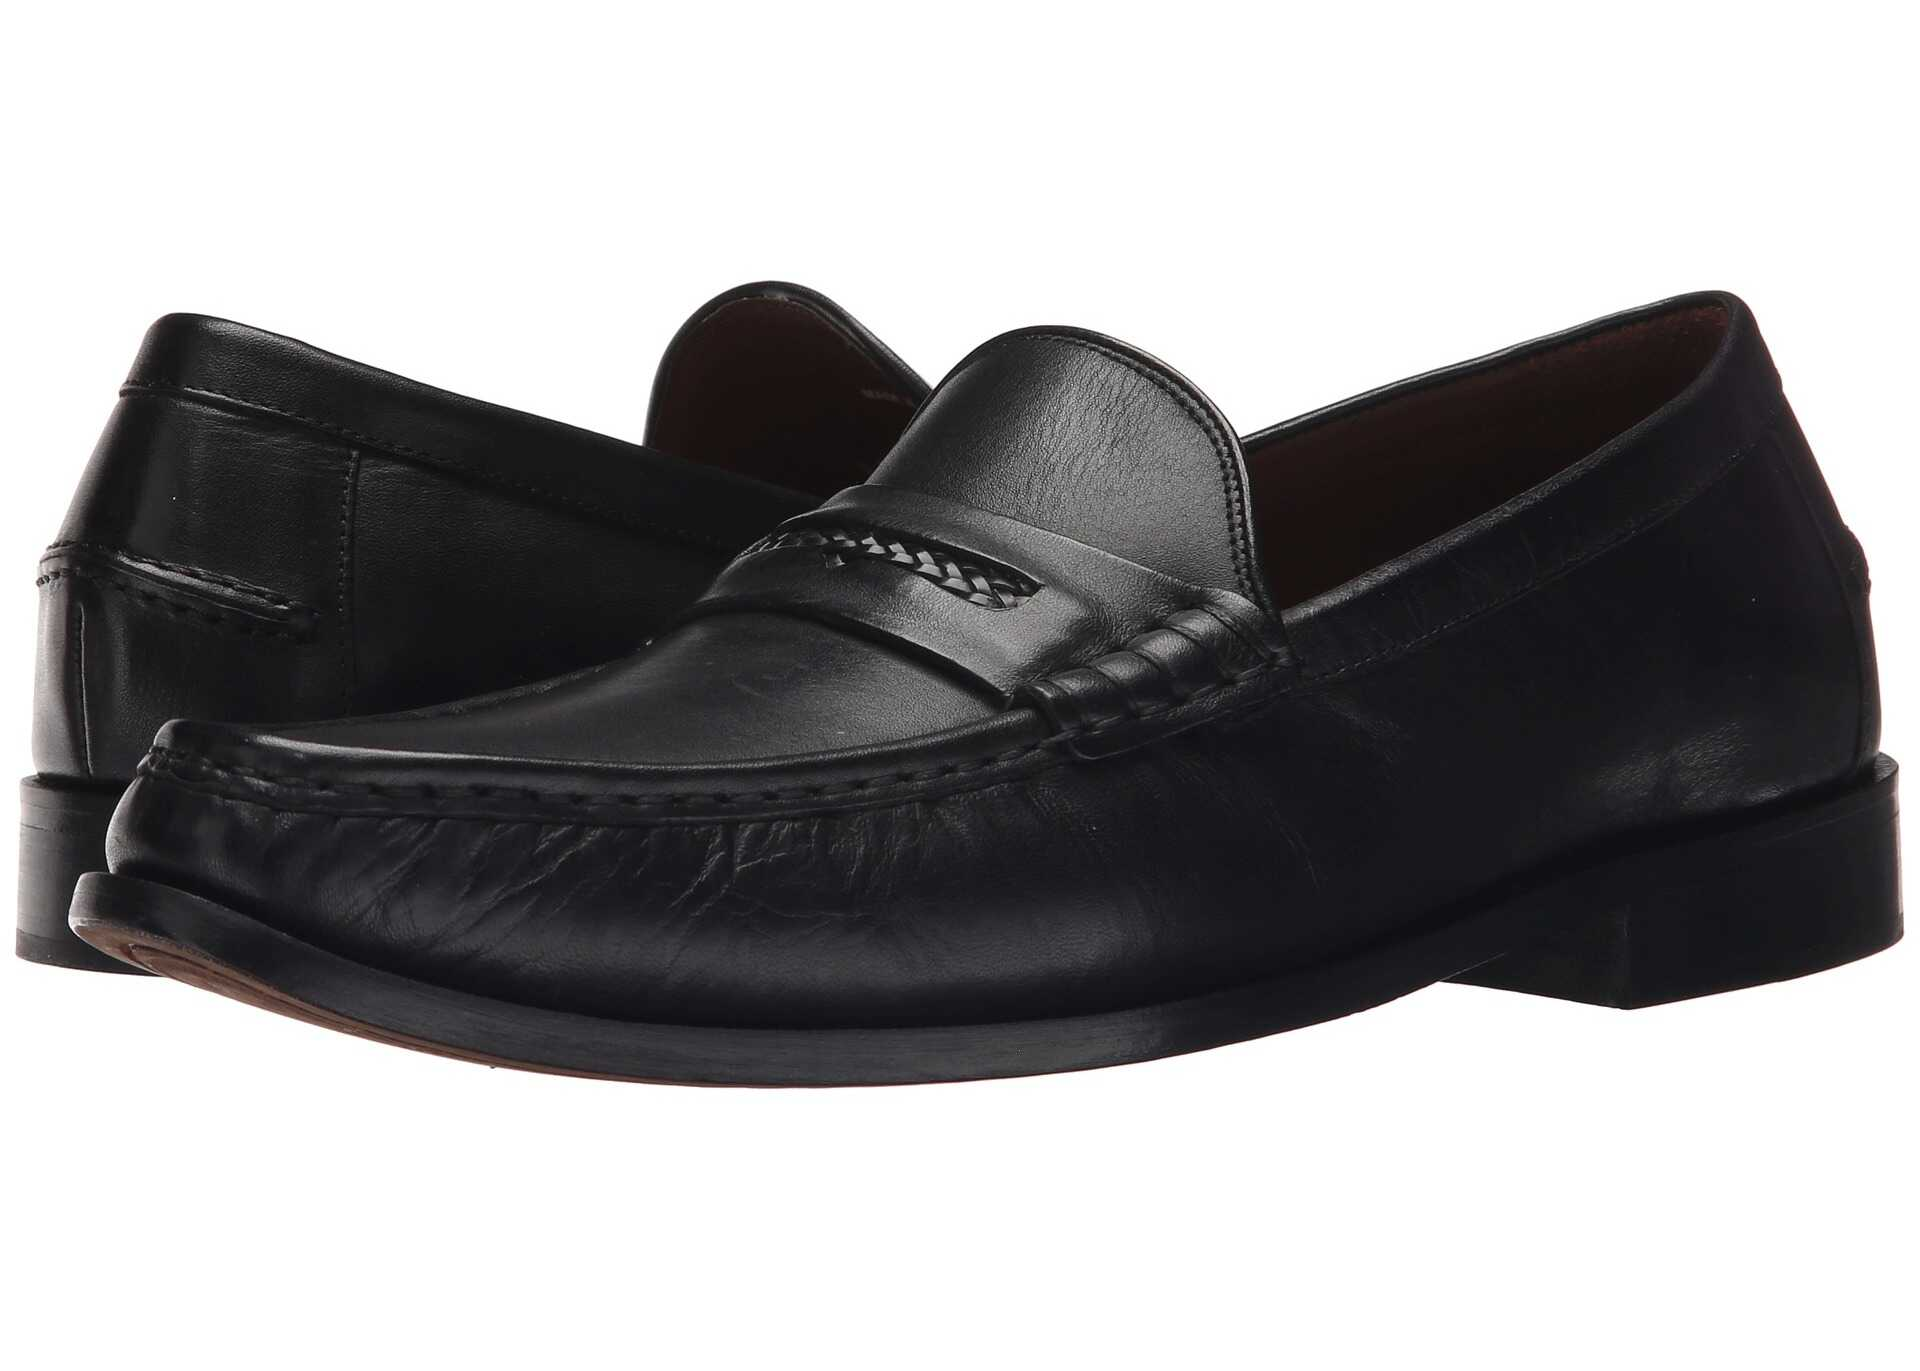 Cole Haan Pinch Gotham Penny Loafer Black